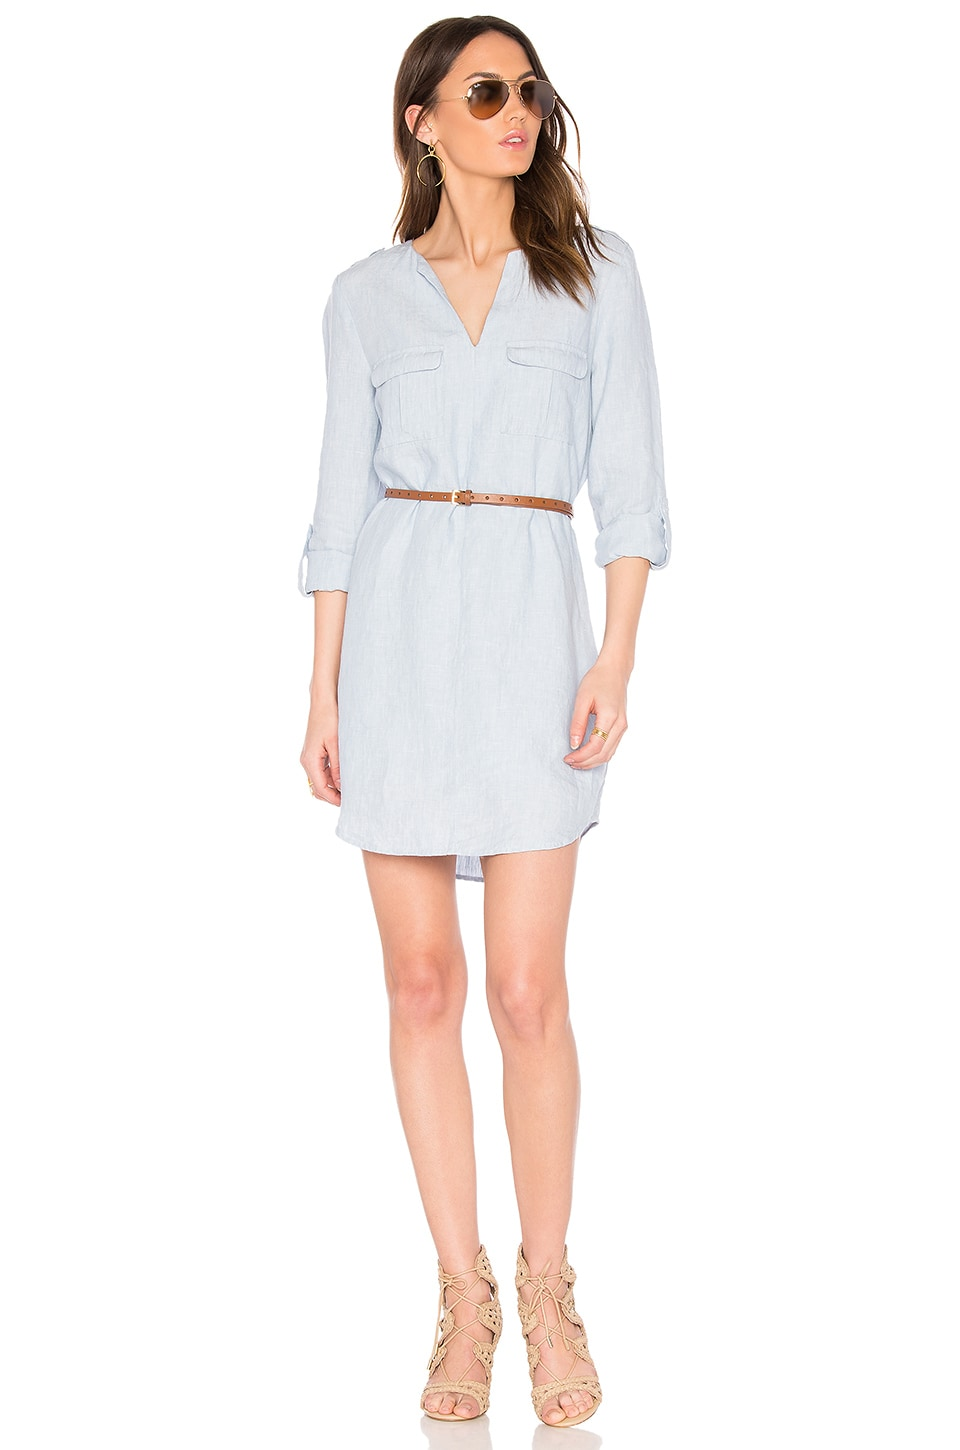 Joie Rathana C Dress in Light Washed Chambray